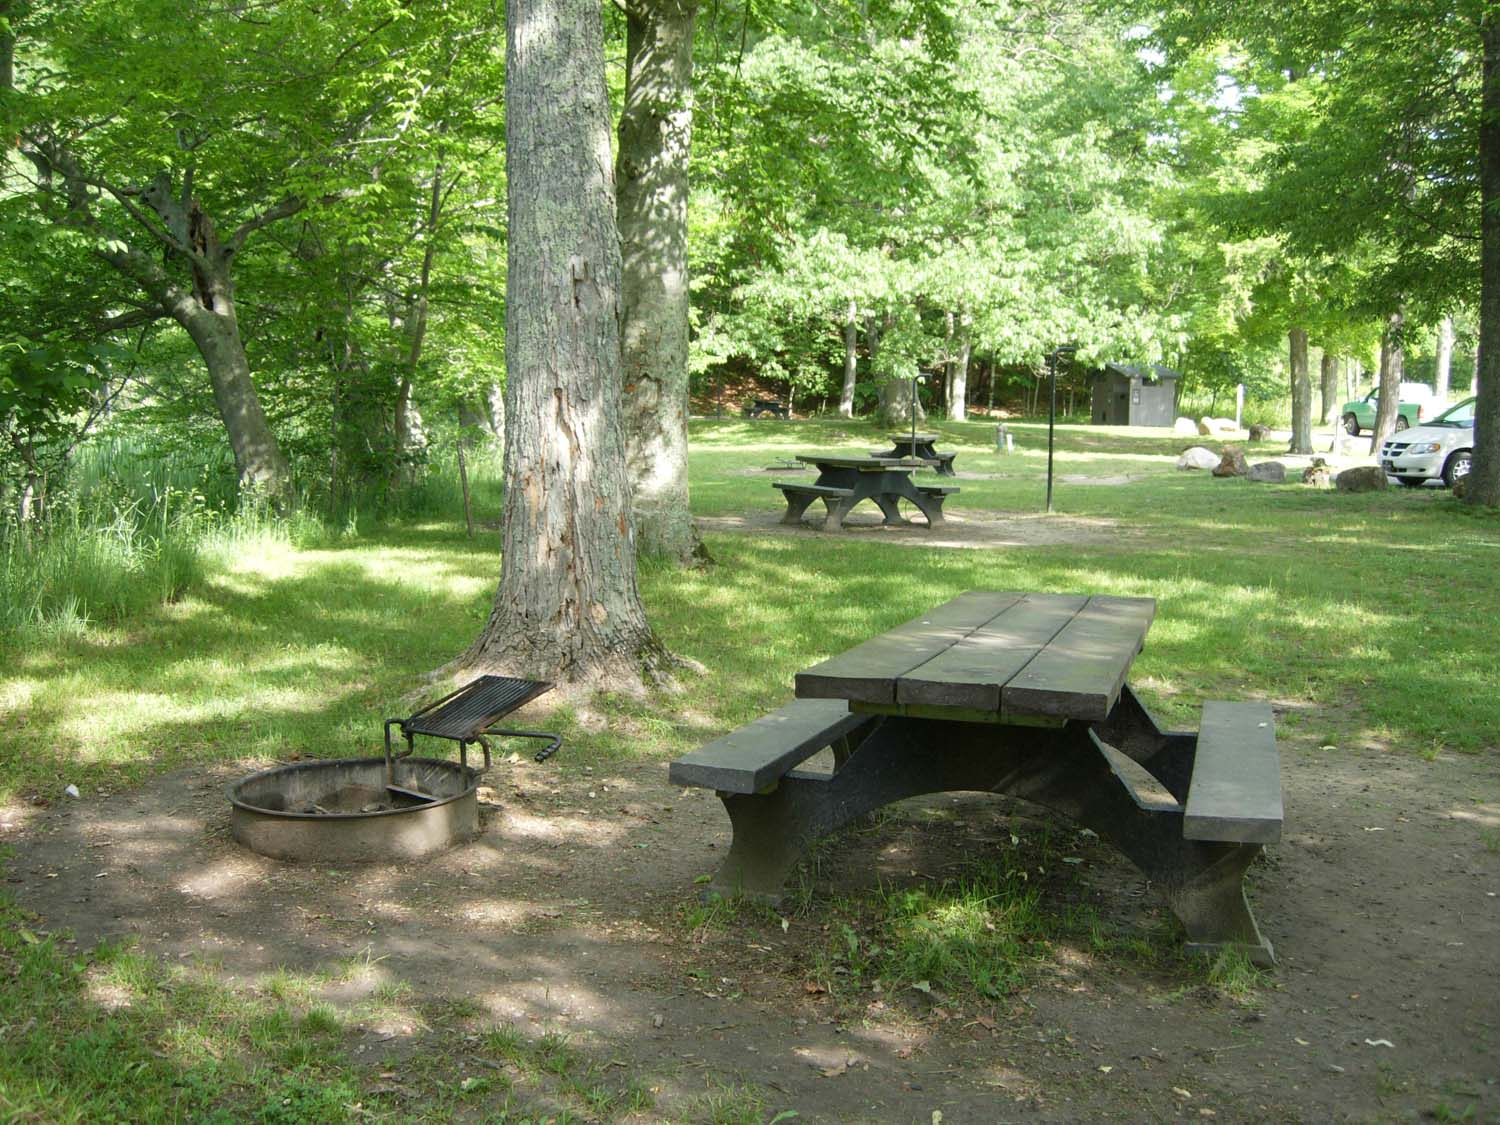 Manistee River - Red Bridge - picnic tables